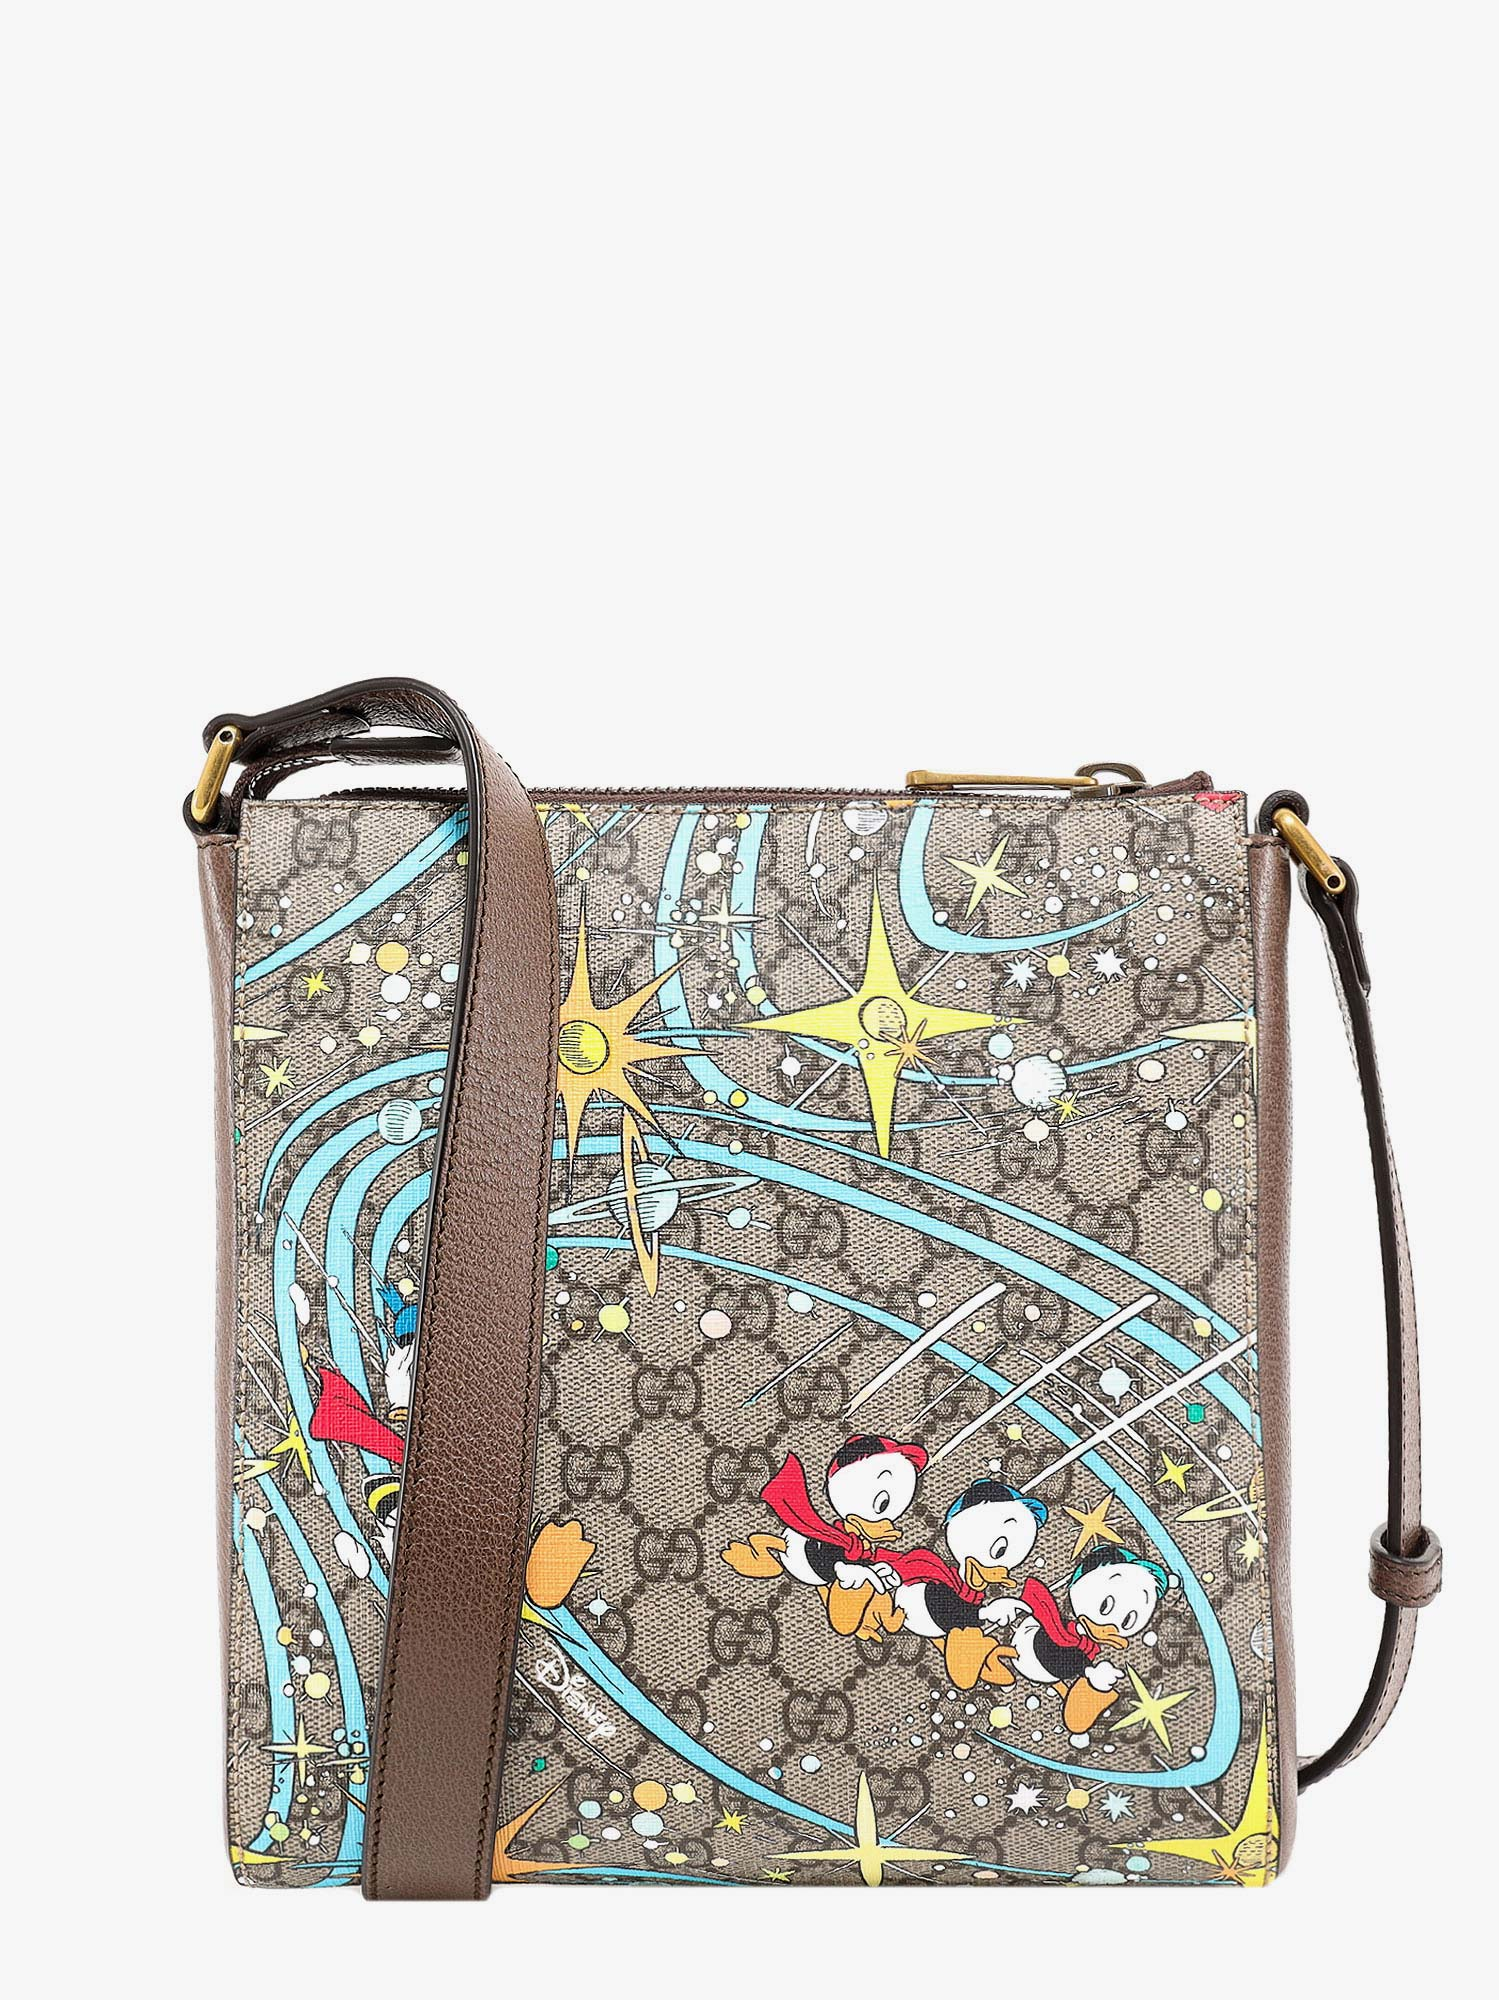 DONALD DUCK DISNEY X GUCCI